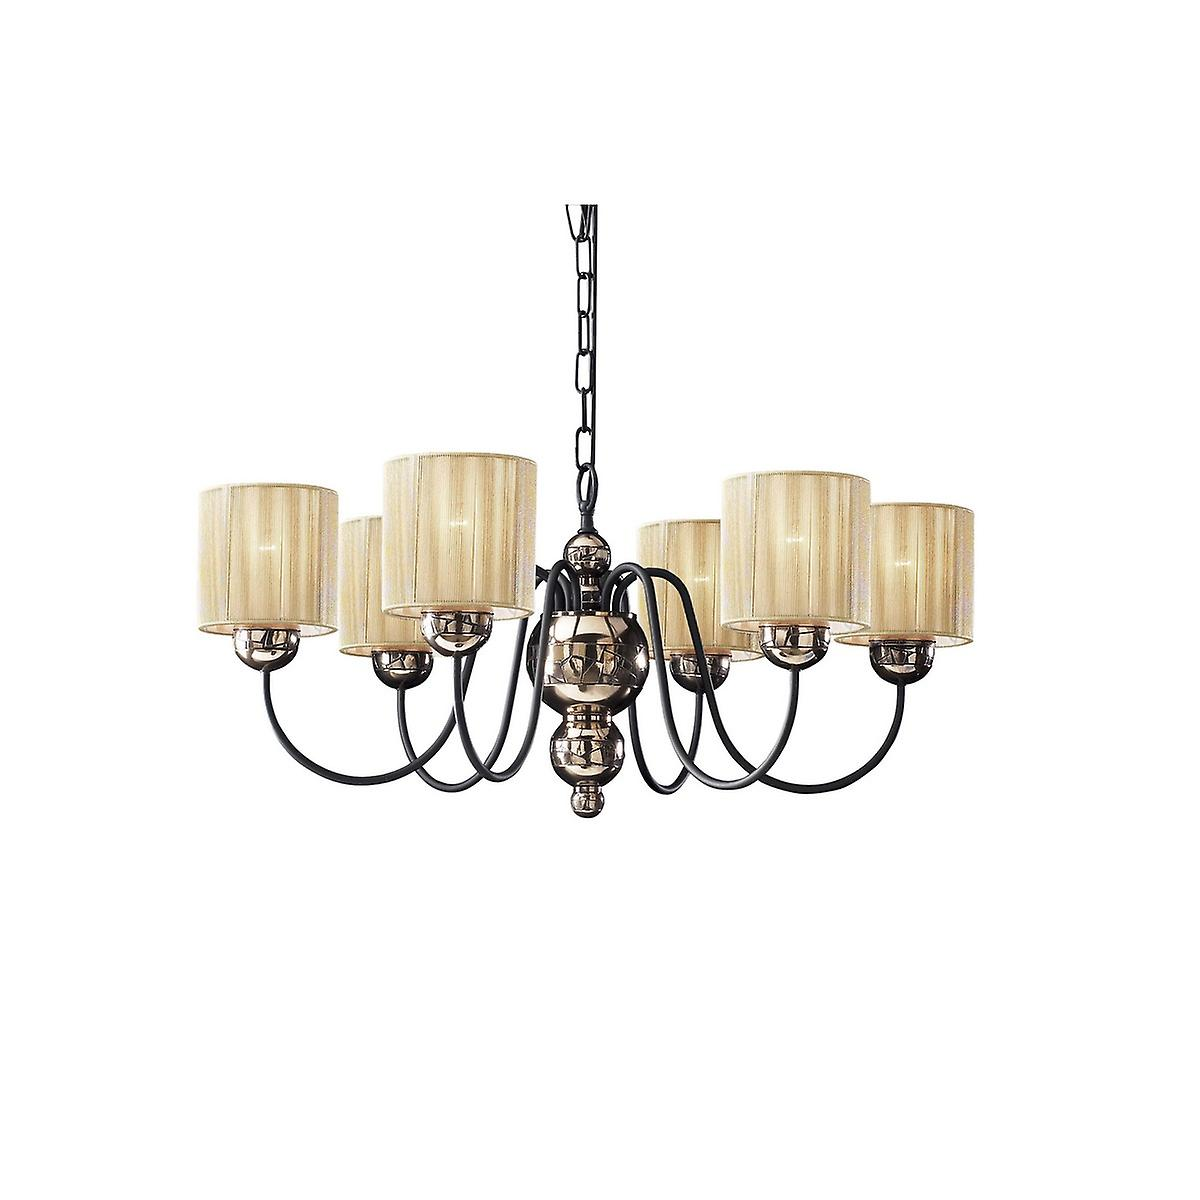 David Hunt GAR0664 Garbo 6 Light Pendant In A Bronze Finish With Gold String Shades